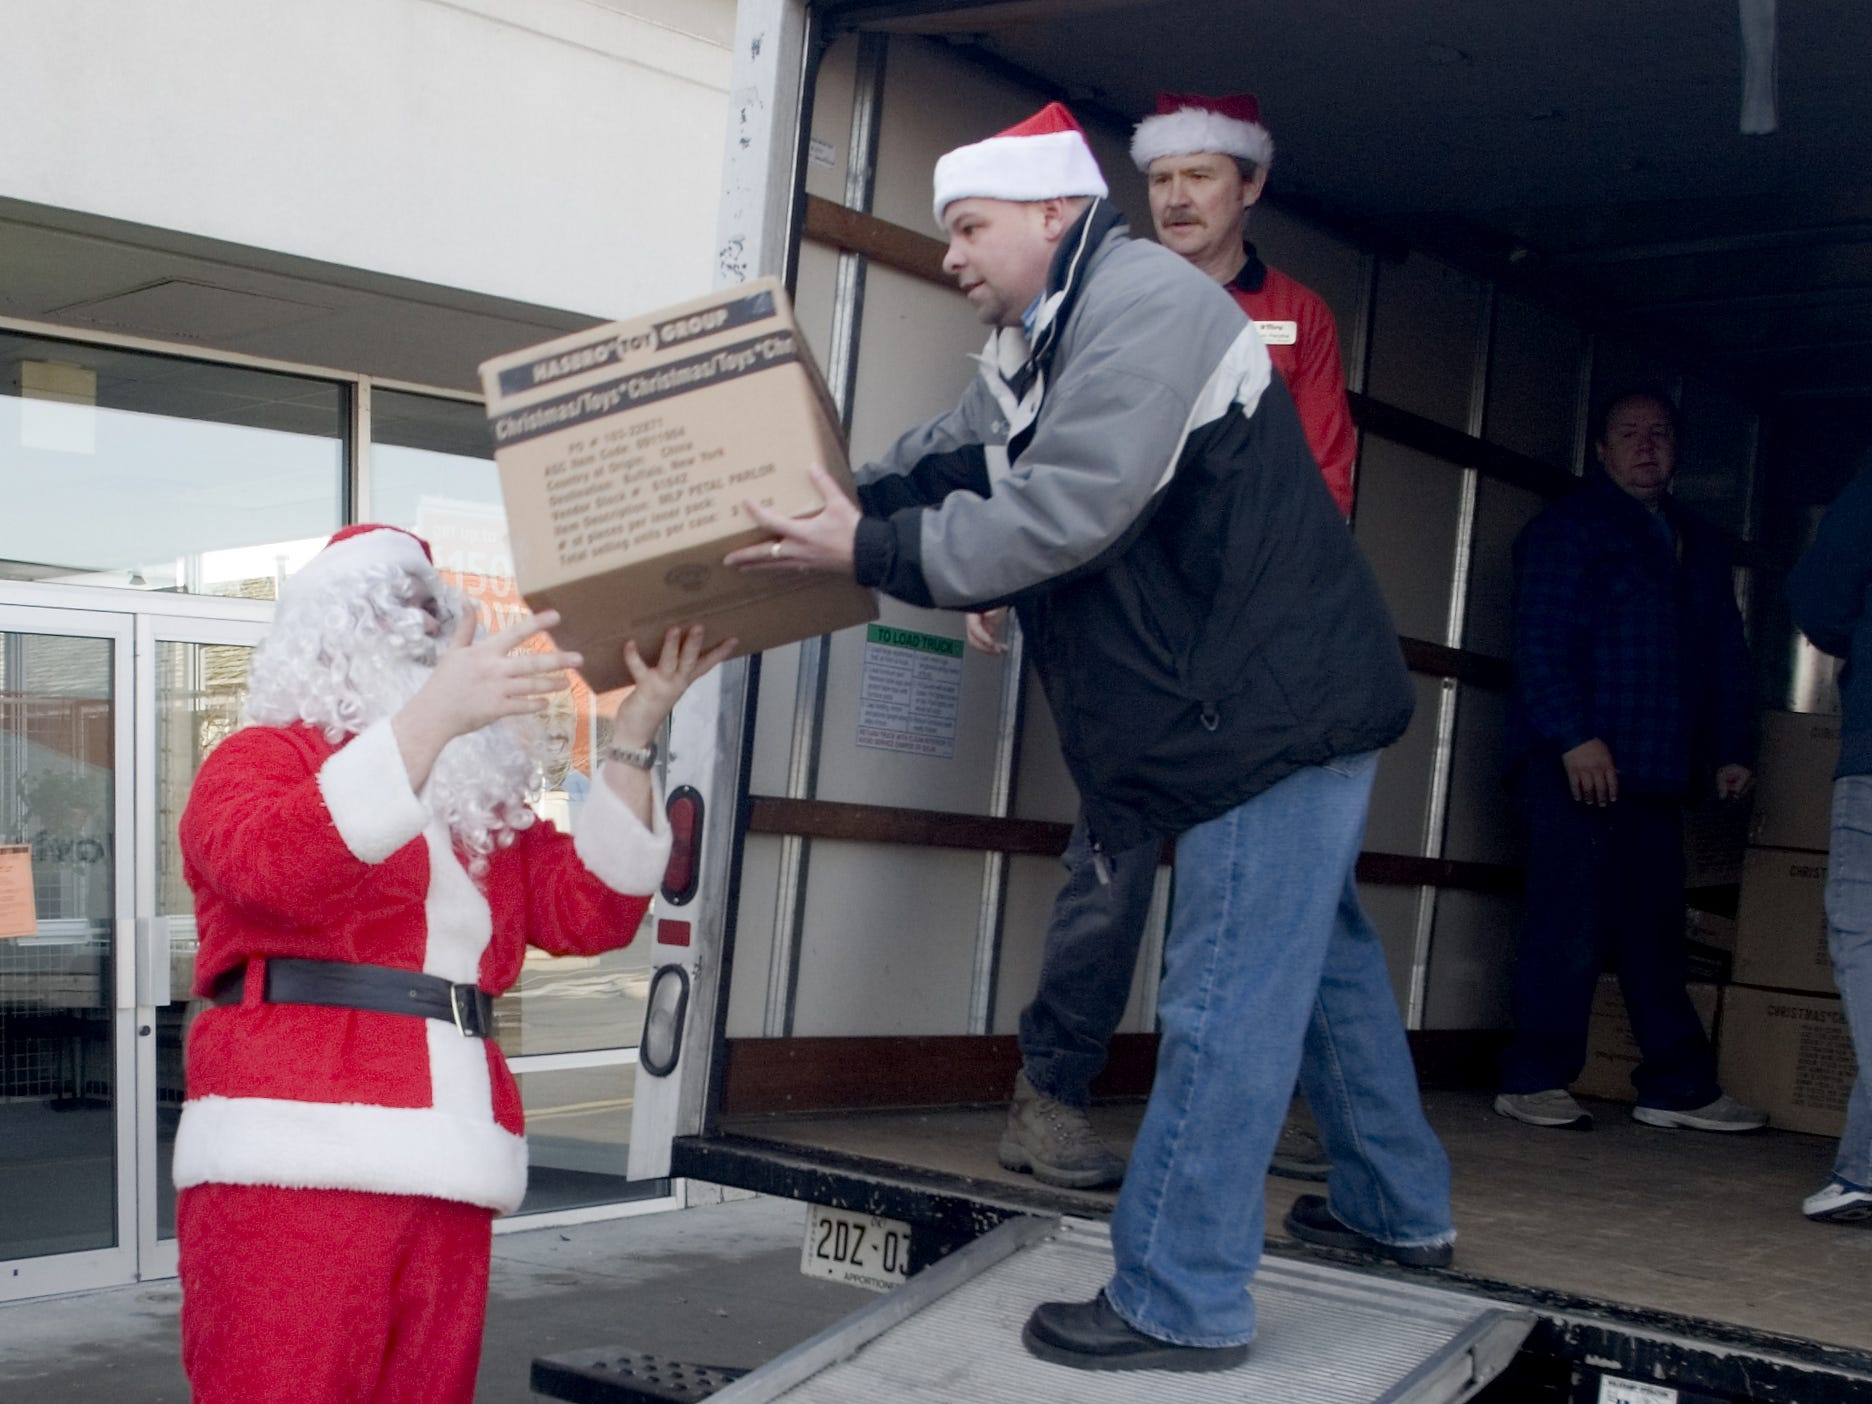 In 2006, Tops boosts Salvation Army Tops Friendly Markets employees Jeremy Stone, left, dressed as Santa Claus, Jim Butts, center, and Tom Petzke load a truck with $5,000 worth of toys donated to the Salvation Army. The toys, along with a $1,100 donation, were paid for by donations from store customers in Elmira and Big Flats.